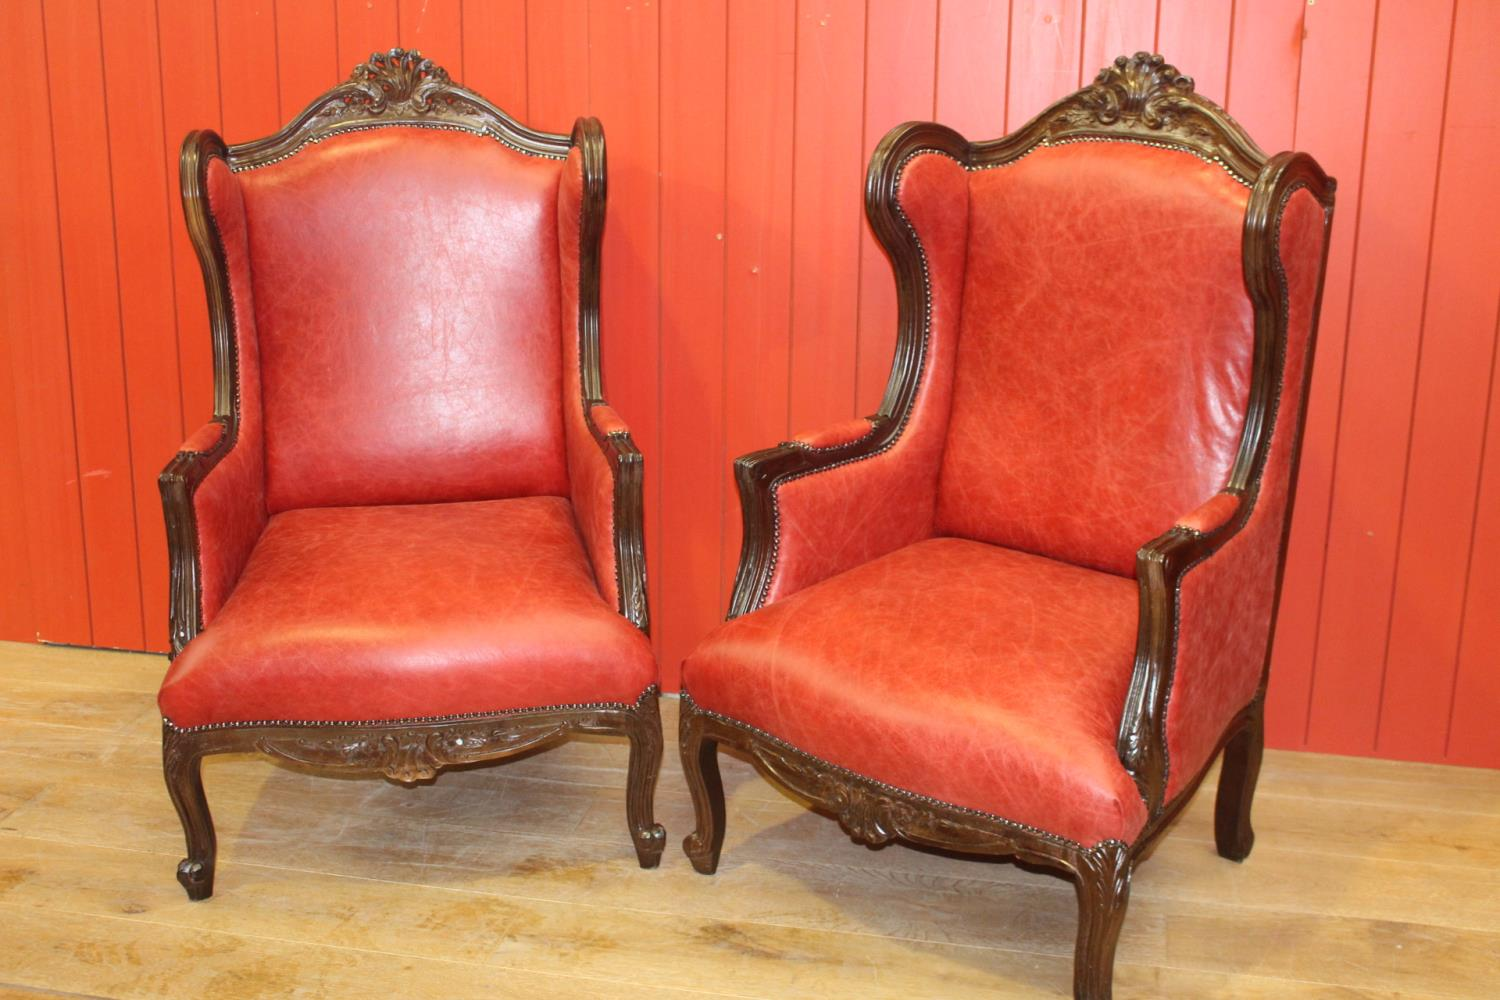 Pair of wing back leather upholstered armchairs